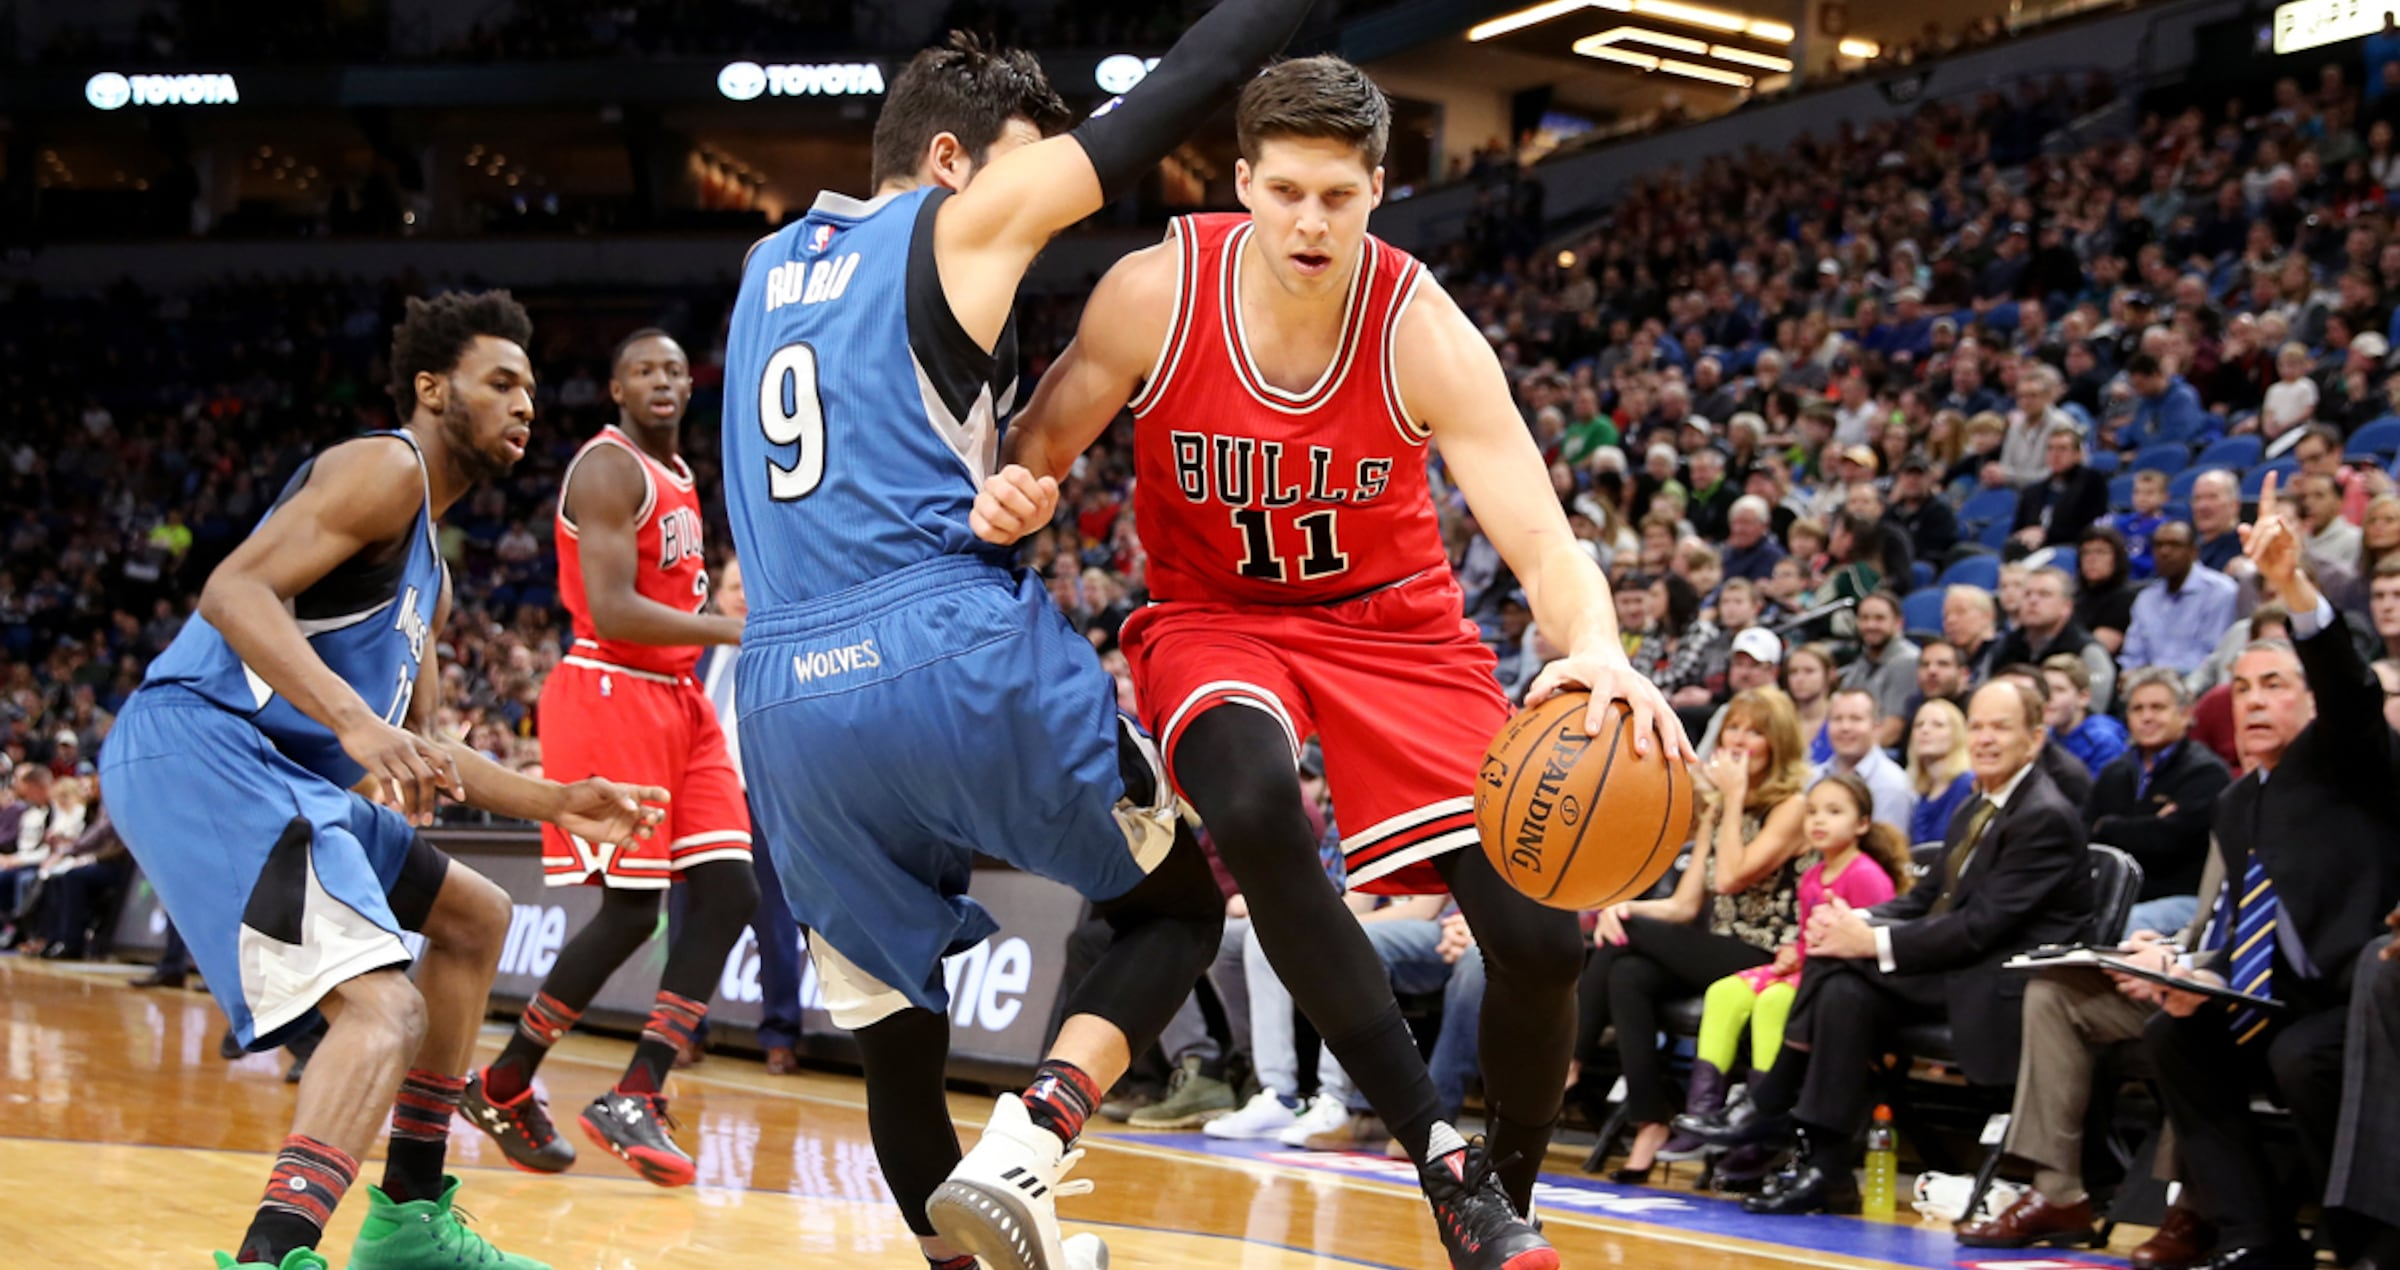 Doug McDermott vs. Timberwolves